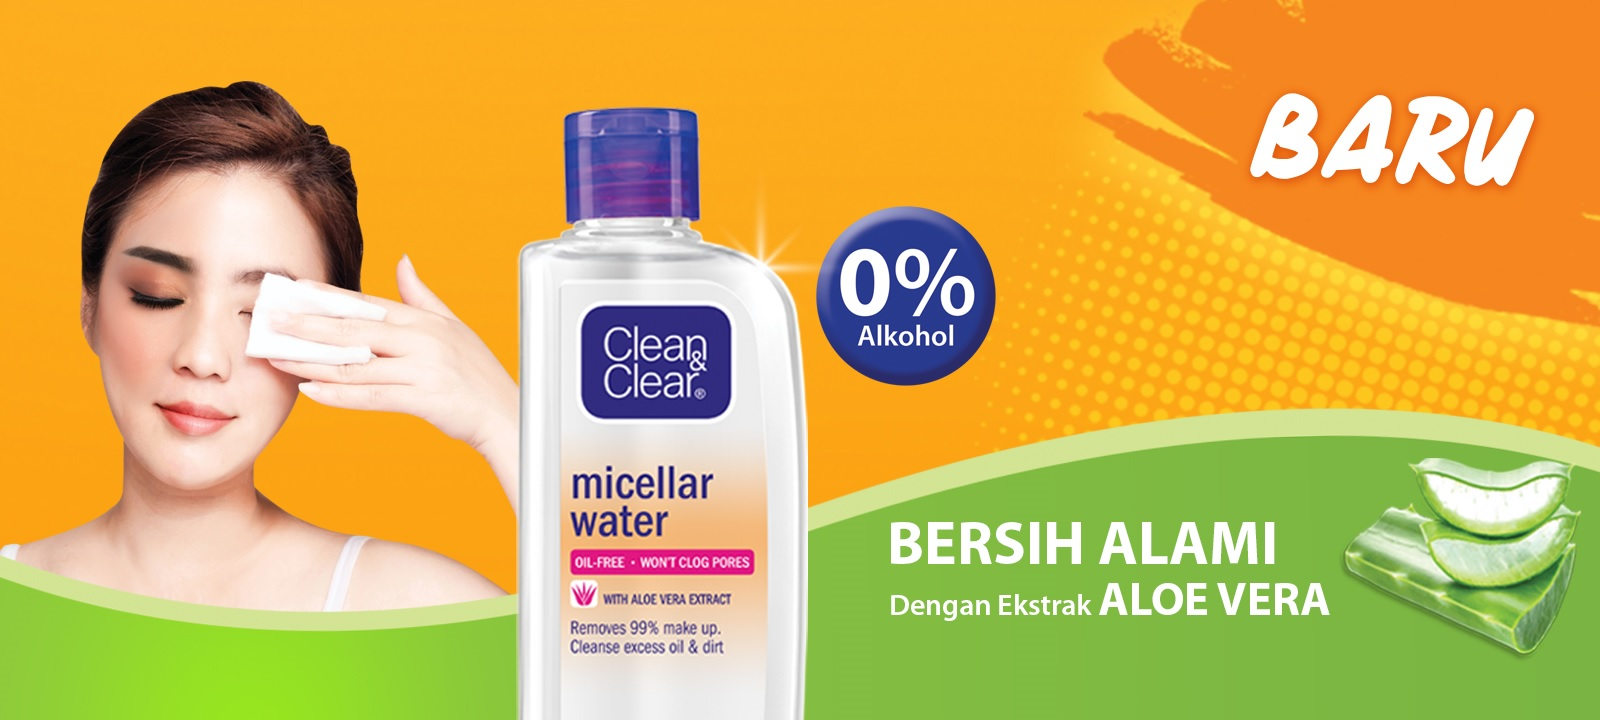 banner-micellar-water-updated.jpg